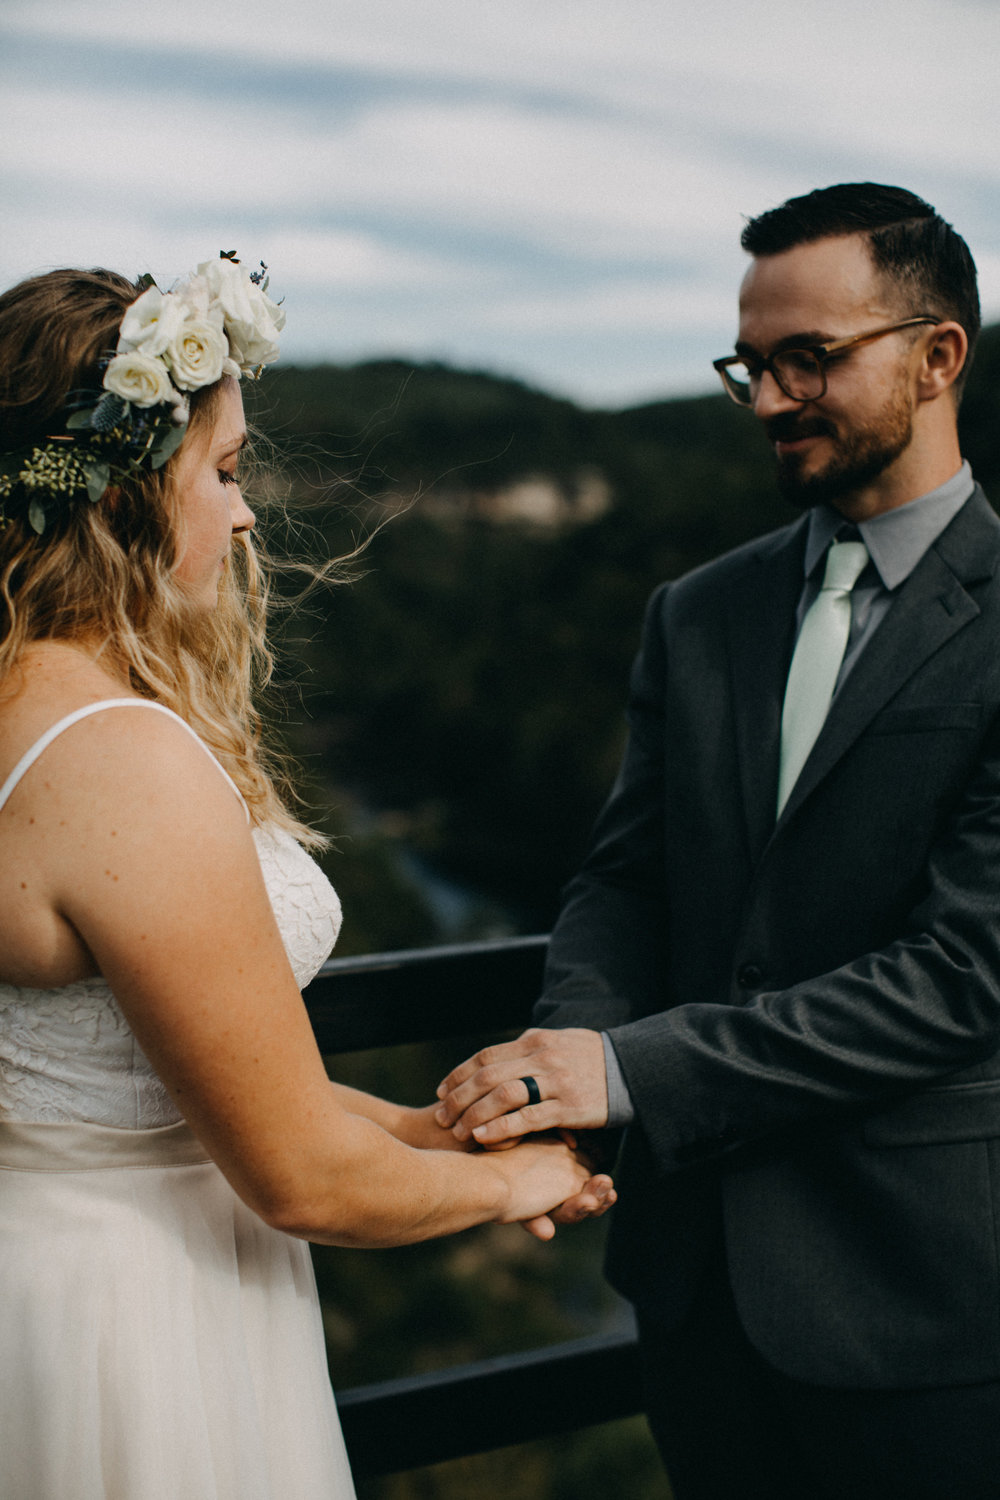 haley + Jared - Intimate Ceremony at Lilly Bluff Overlook in Obed National Park